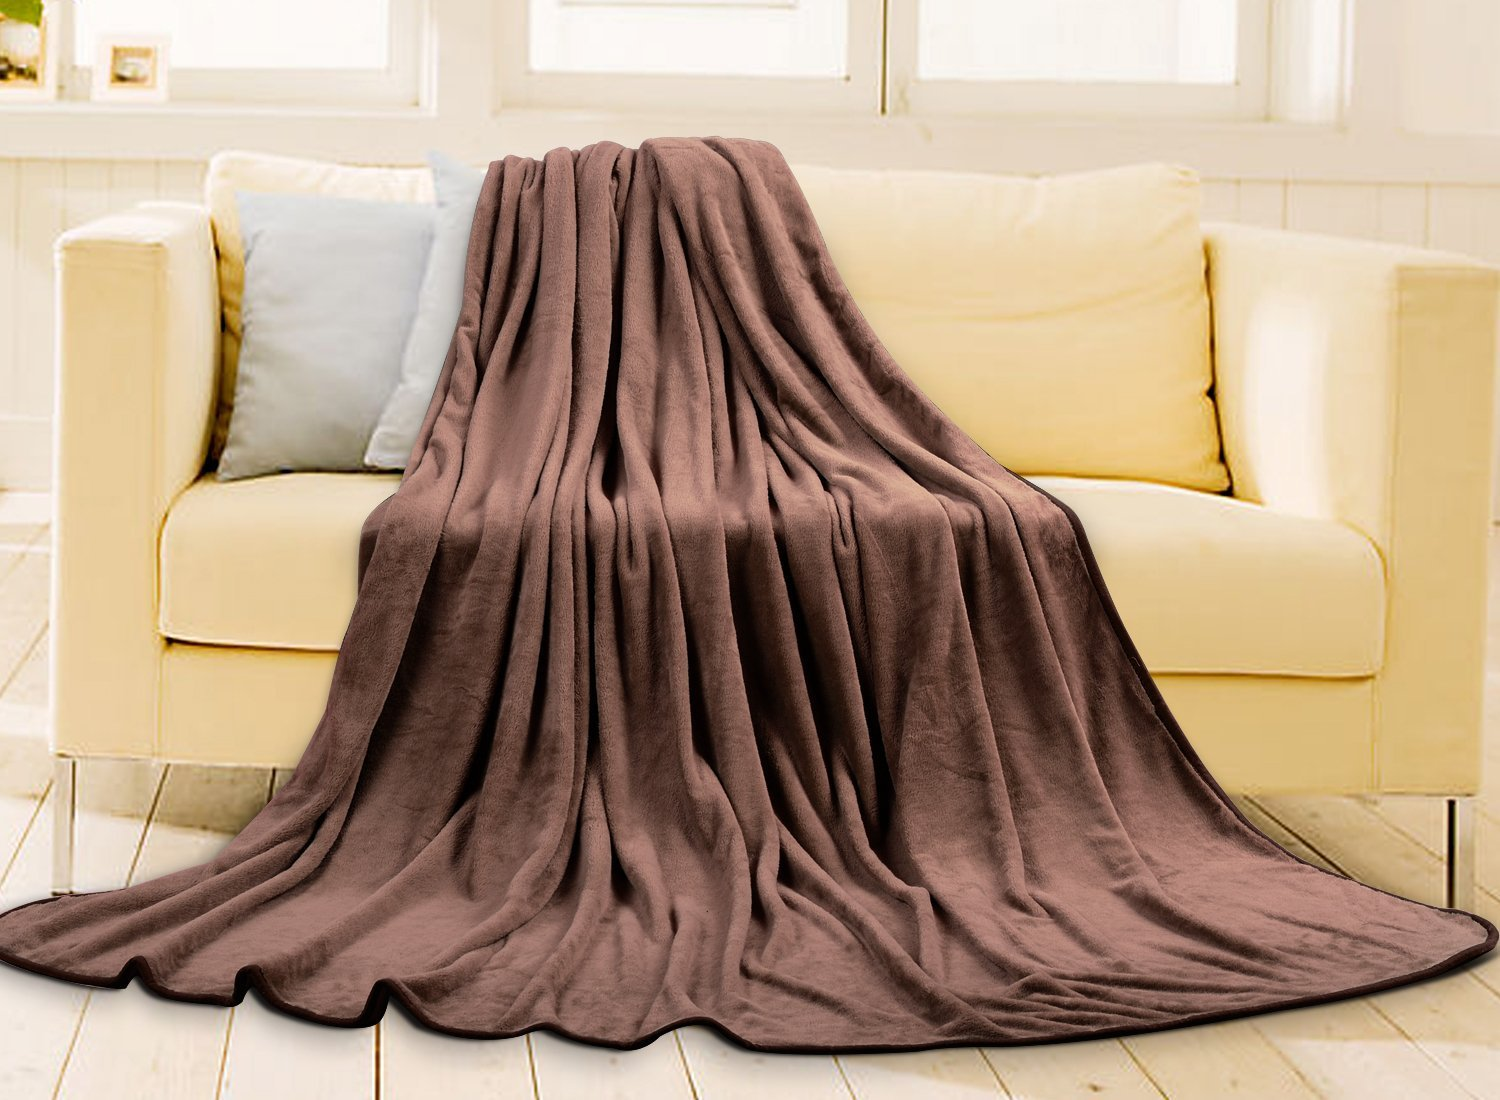 Fleece Blanket Super Soft Warm Fuzzy Lightweight Bed or Couch Blanket Twin/Queen/King Size(King,Brown